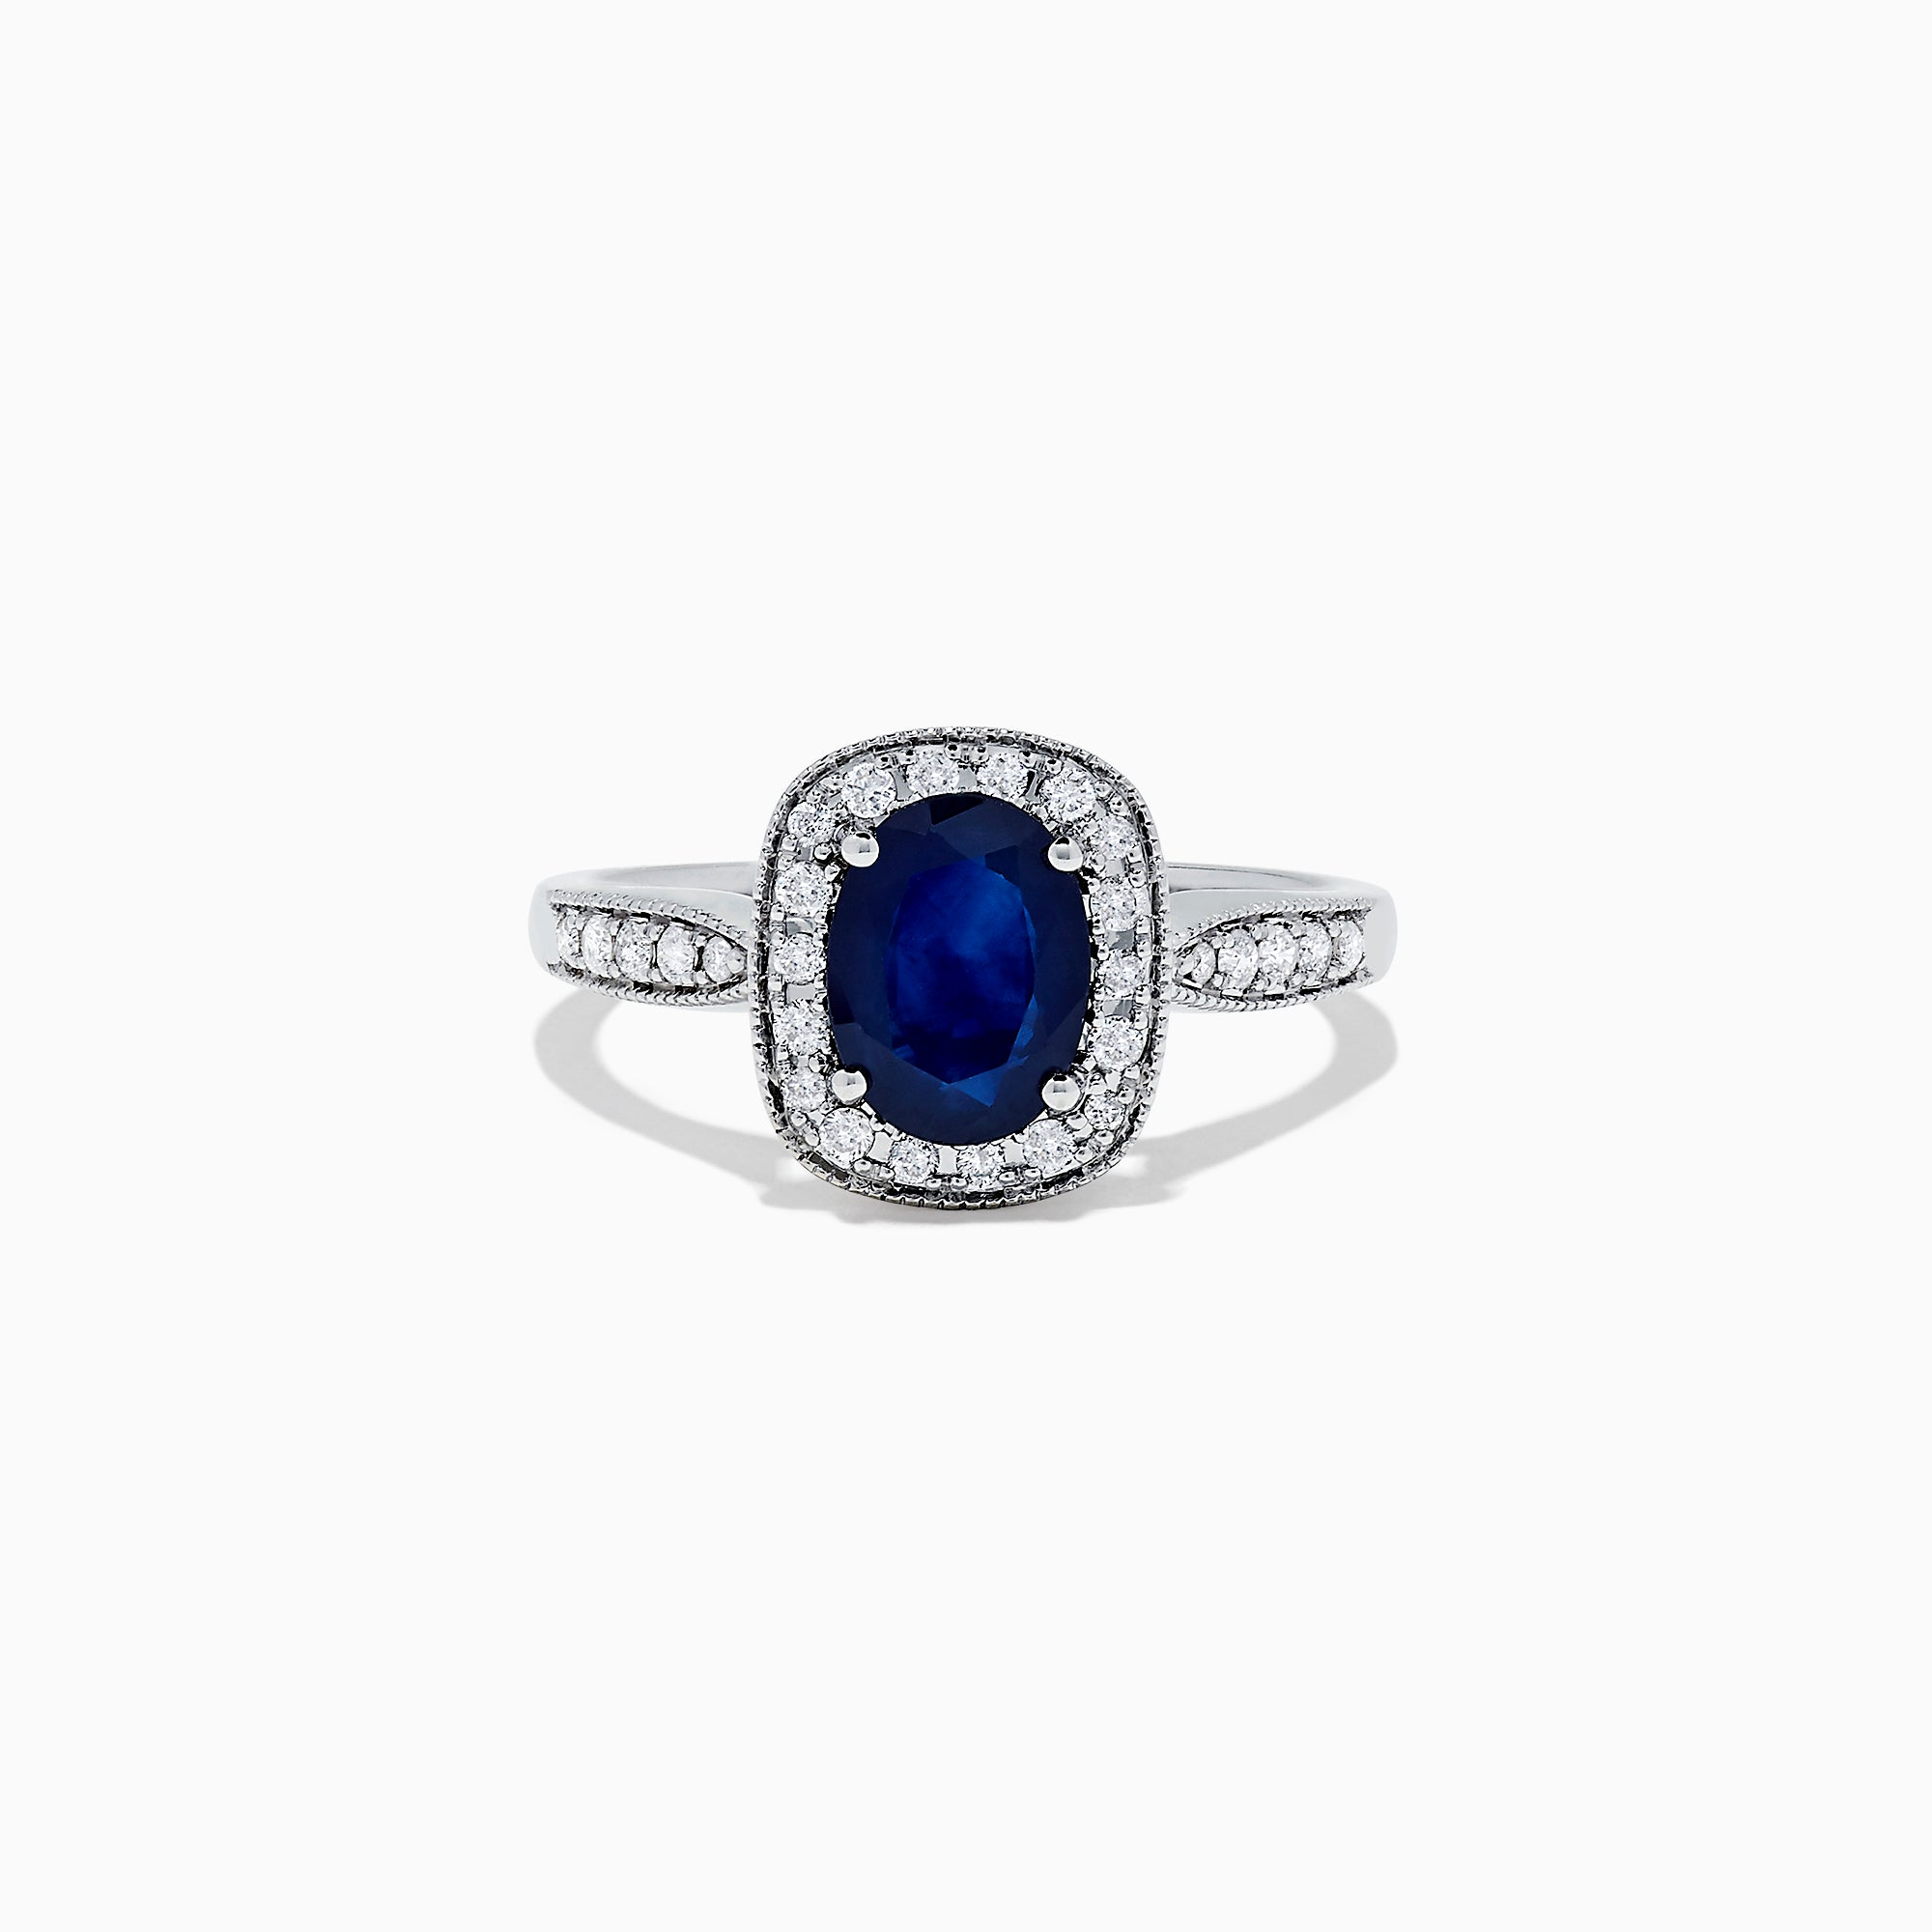 Effy 14K White Gold Sapphire and Diamond Ring, 1.64 TCW